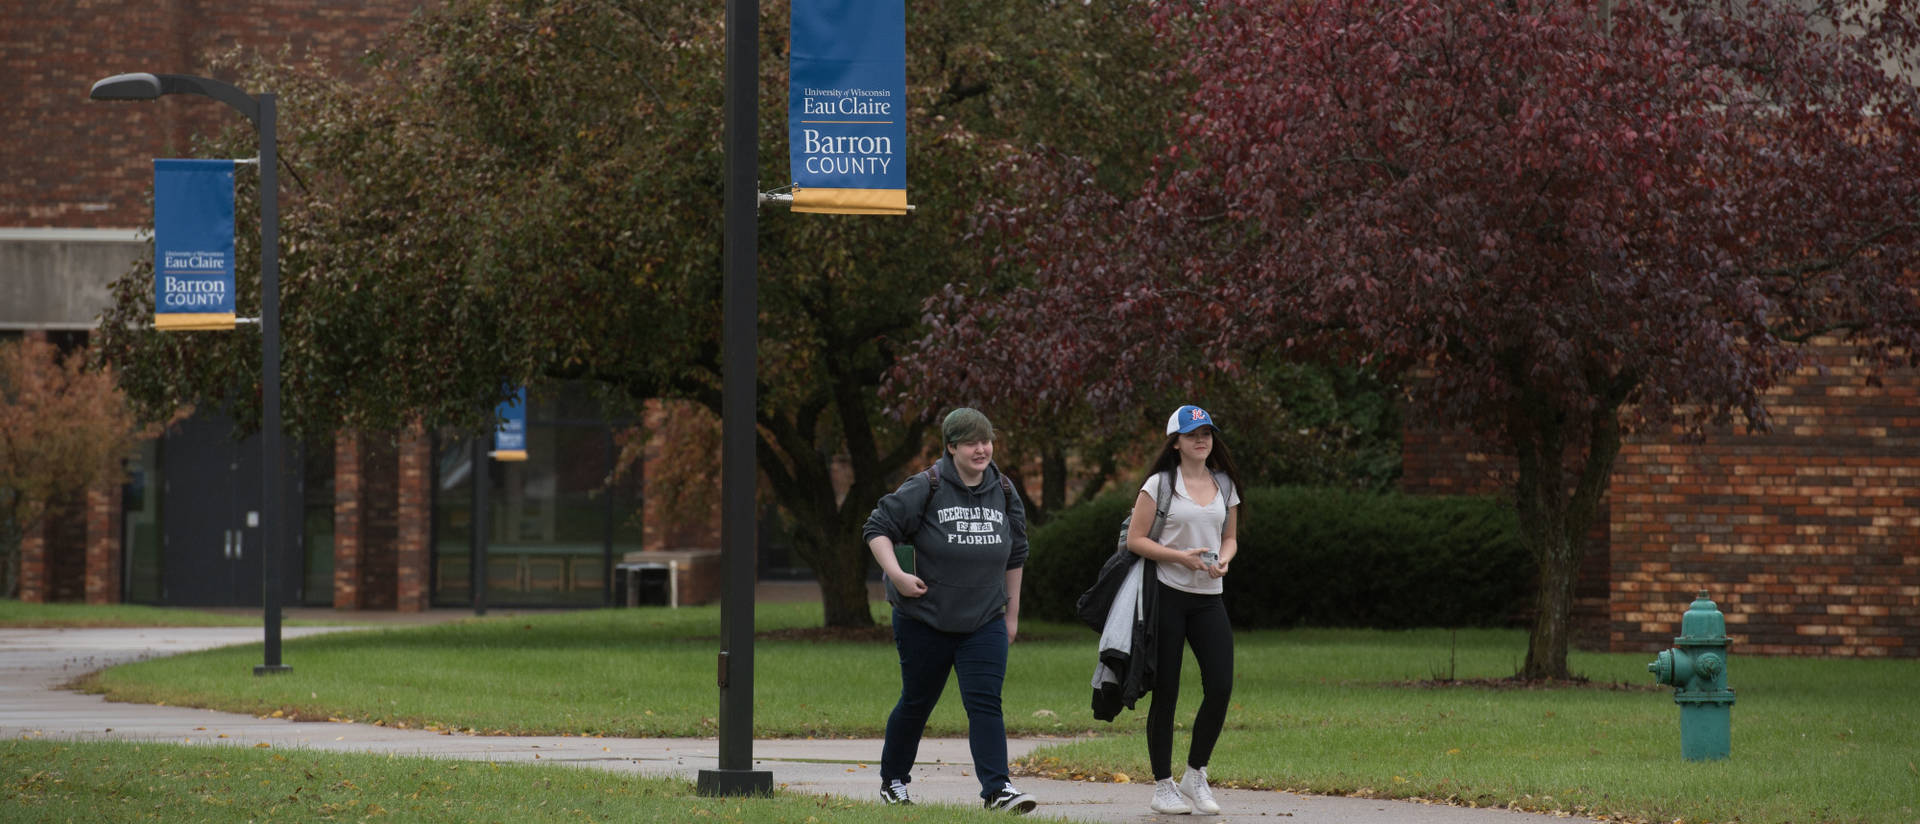 Students walking on UW-Eau Claire Barron County Campus